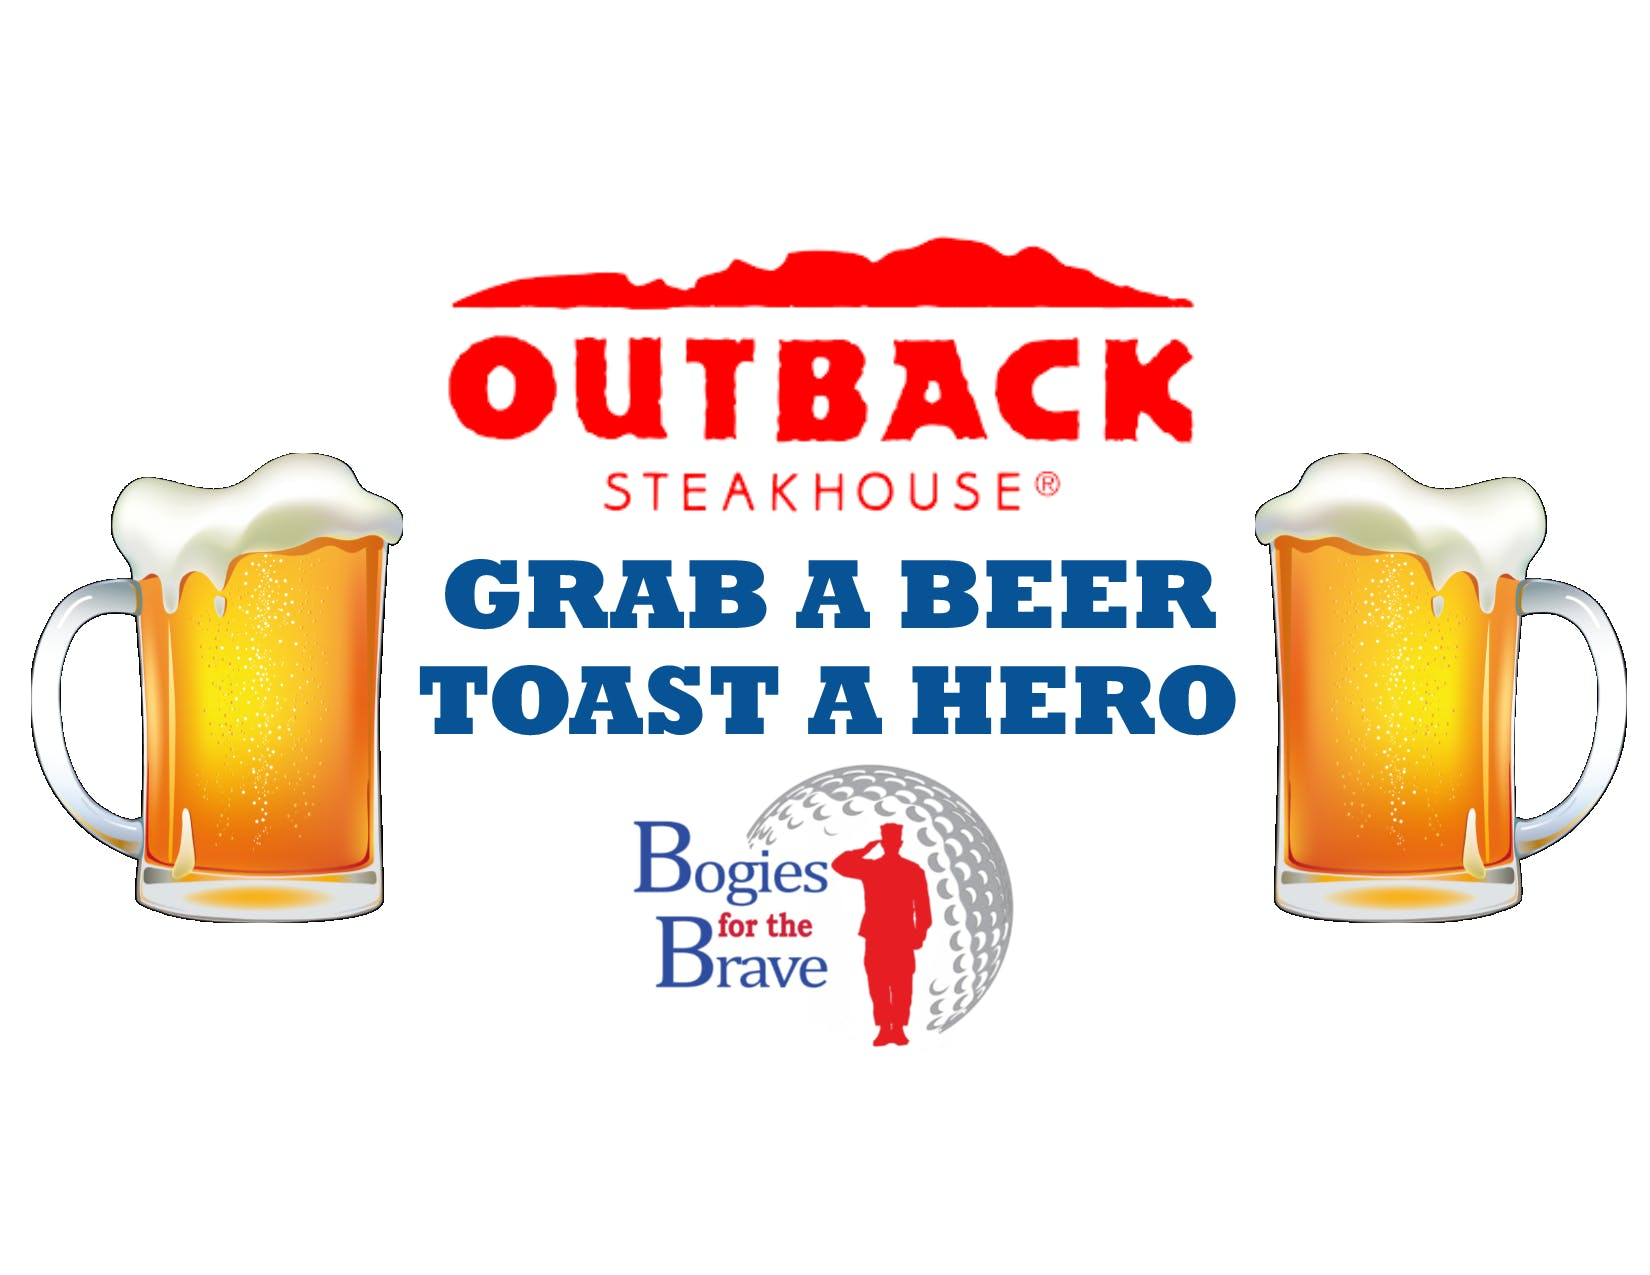 GRAB A BEER & TOAST A HERO at Outback Steakhouse, Newington